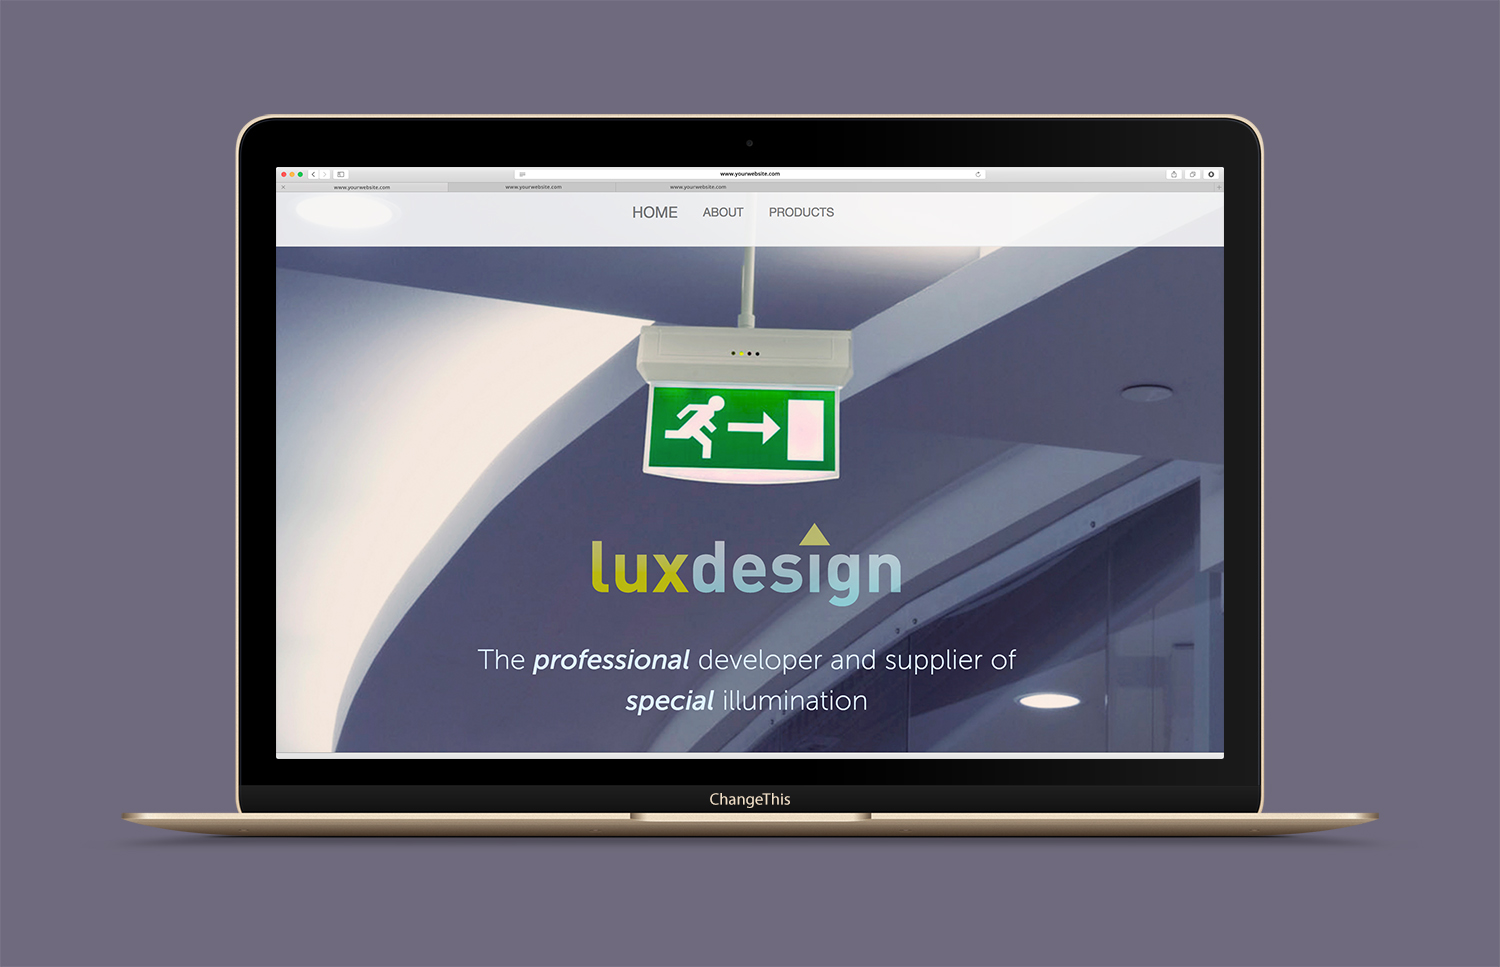 luxdesign.no